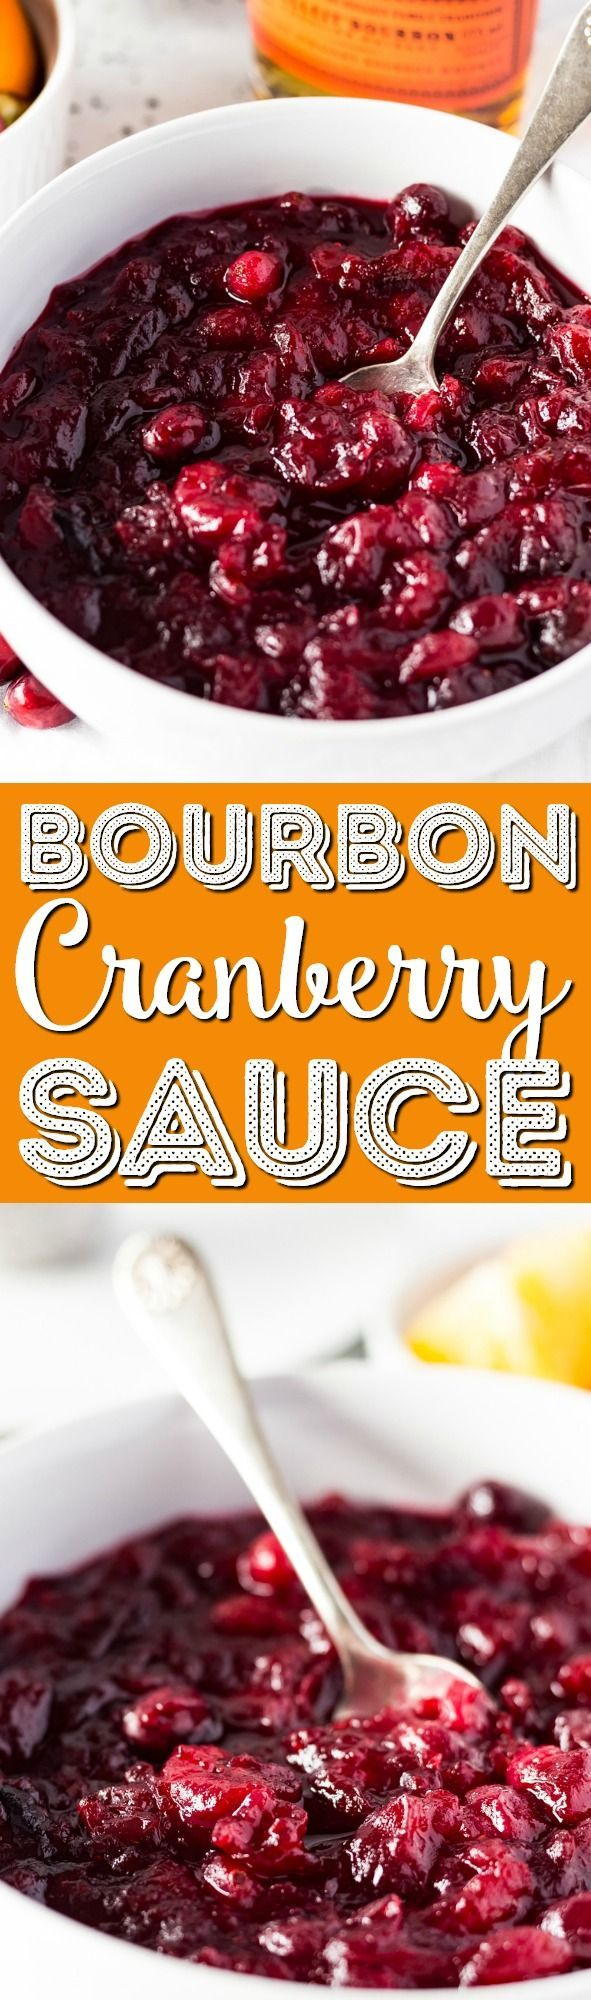 This Bourbon Orange Cranberry Sauce is loaded with tart and zesty flavor! Made with fresh cranberries, orange juice, orange zest, and bourbon on the stove and ready in less than 30 minutes. via @sugarandsoulco